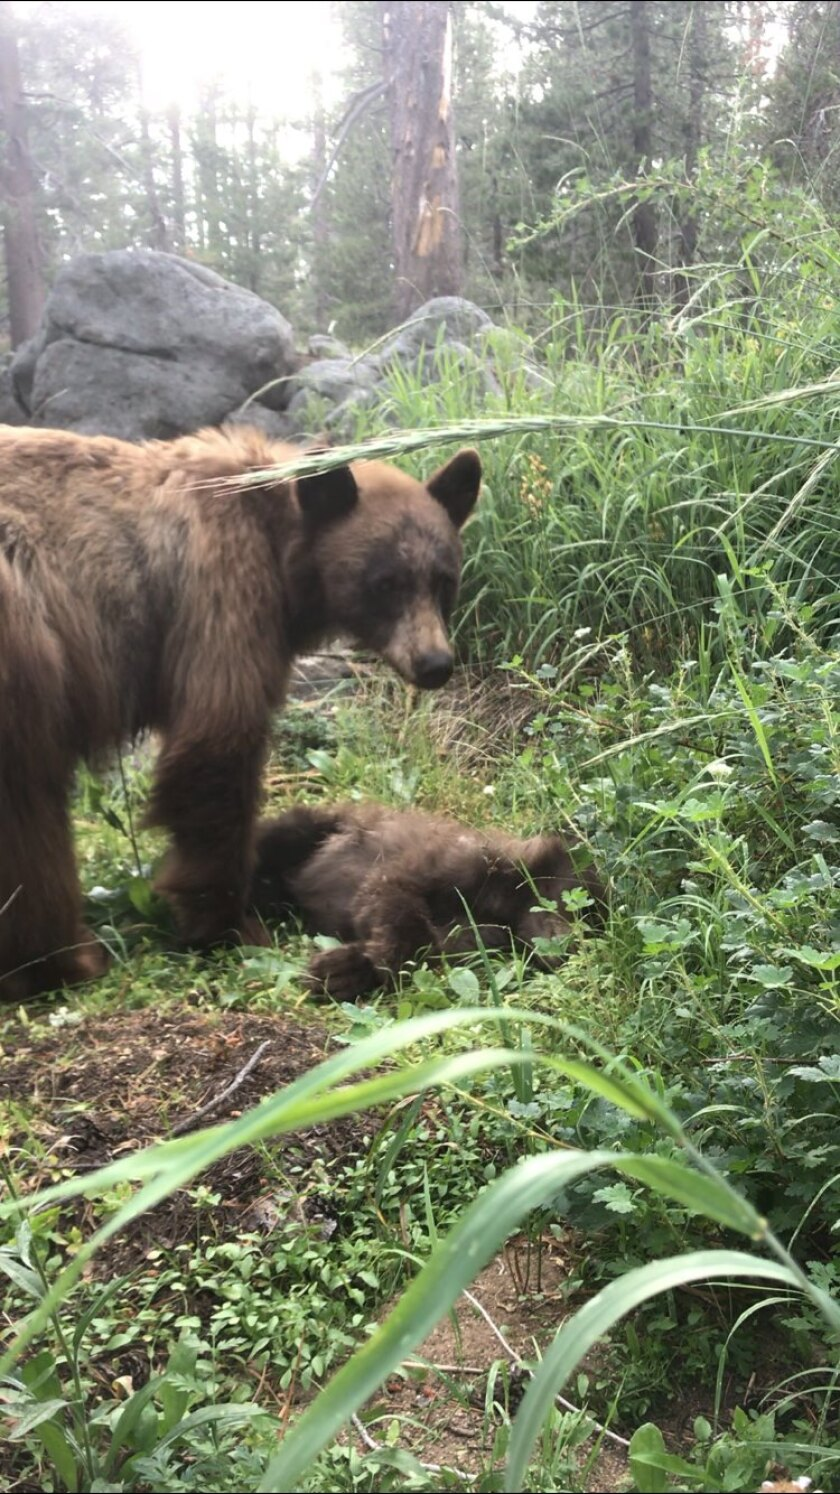 A mother bear stands over the body of her cub, killed by a vehicle in Yosemite National Park.